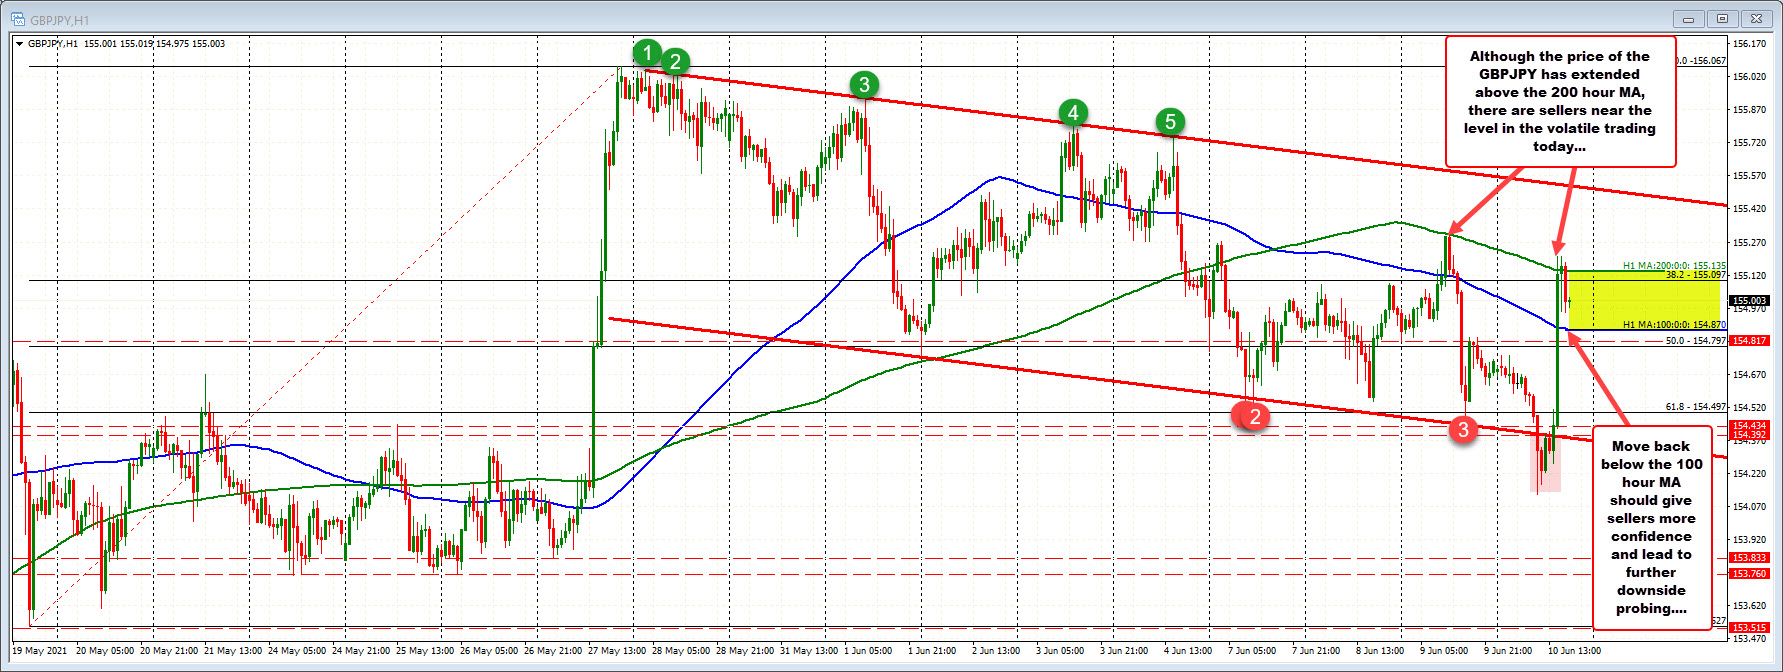 Yesterday, the price stalled near the MA line as well